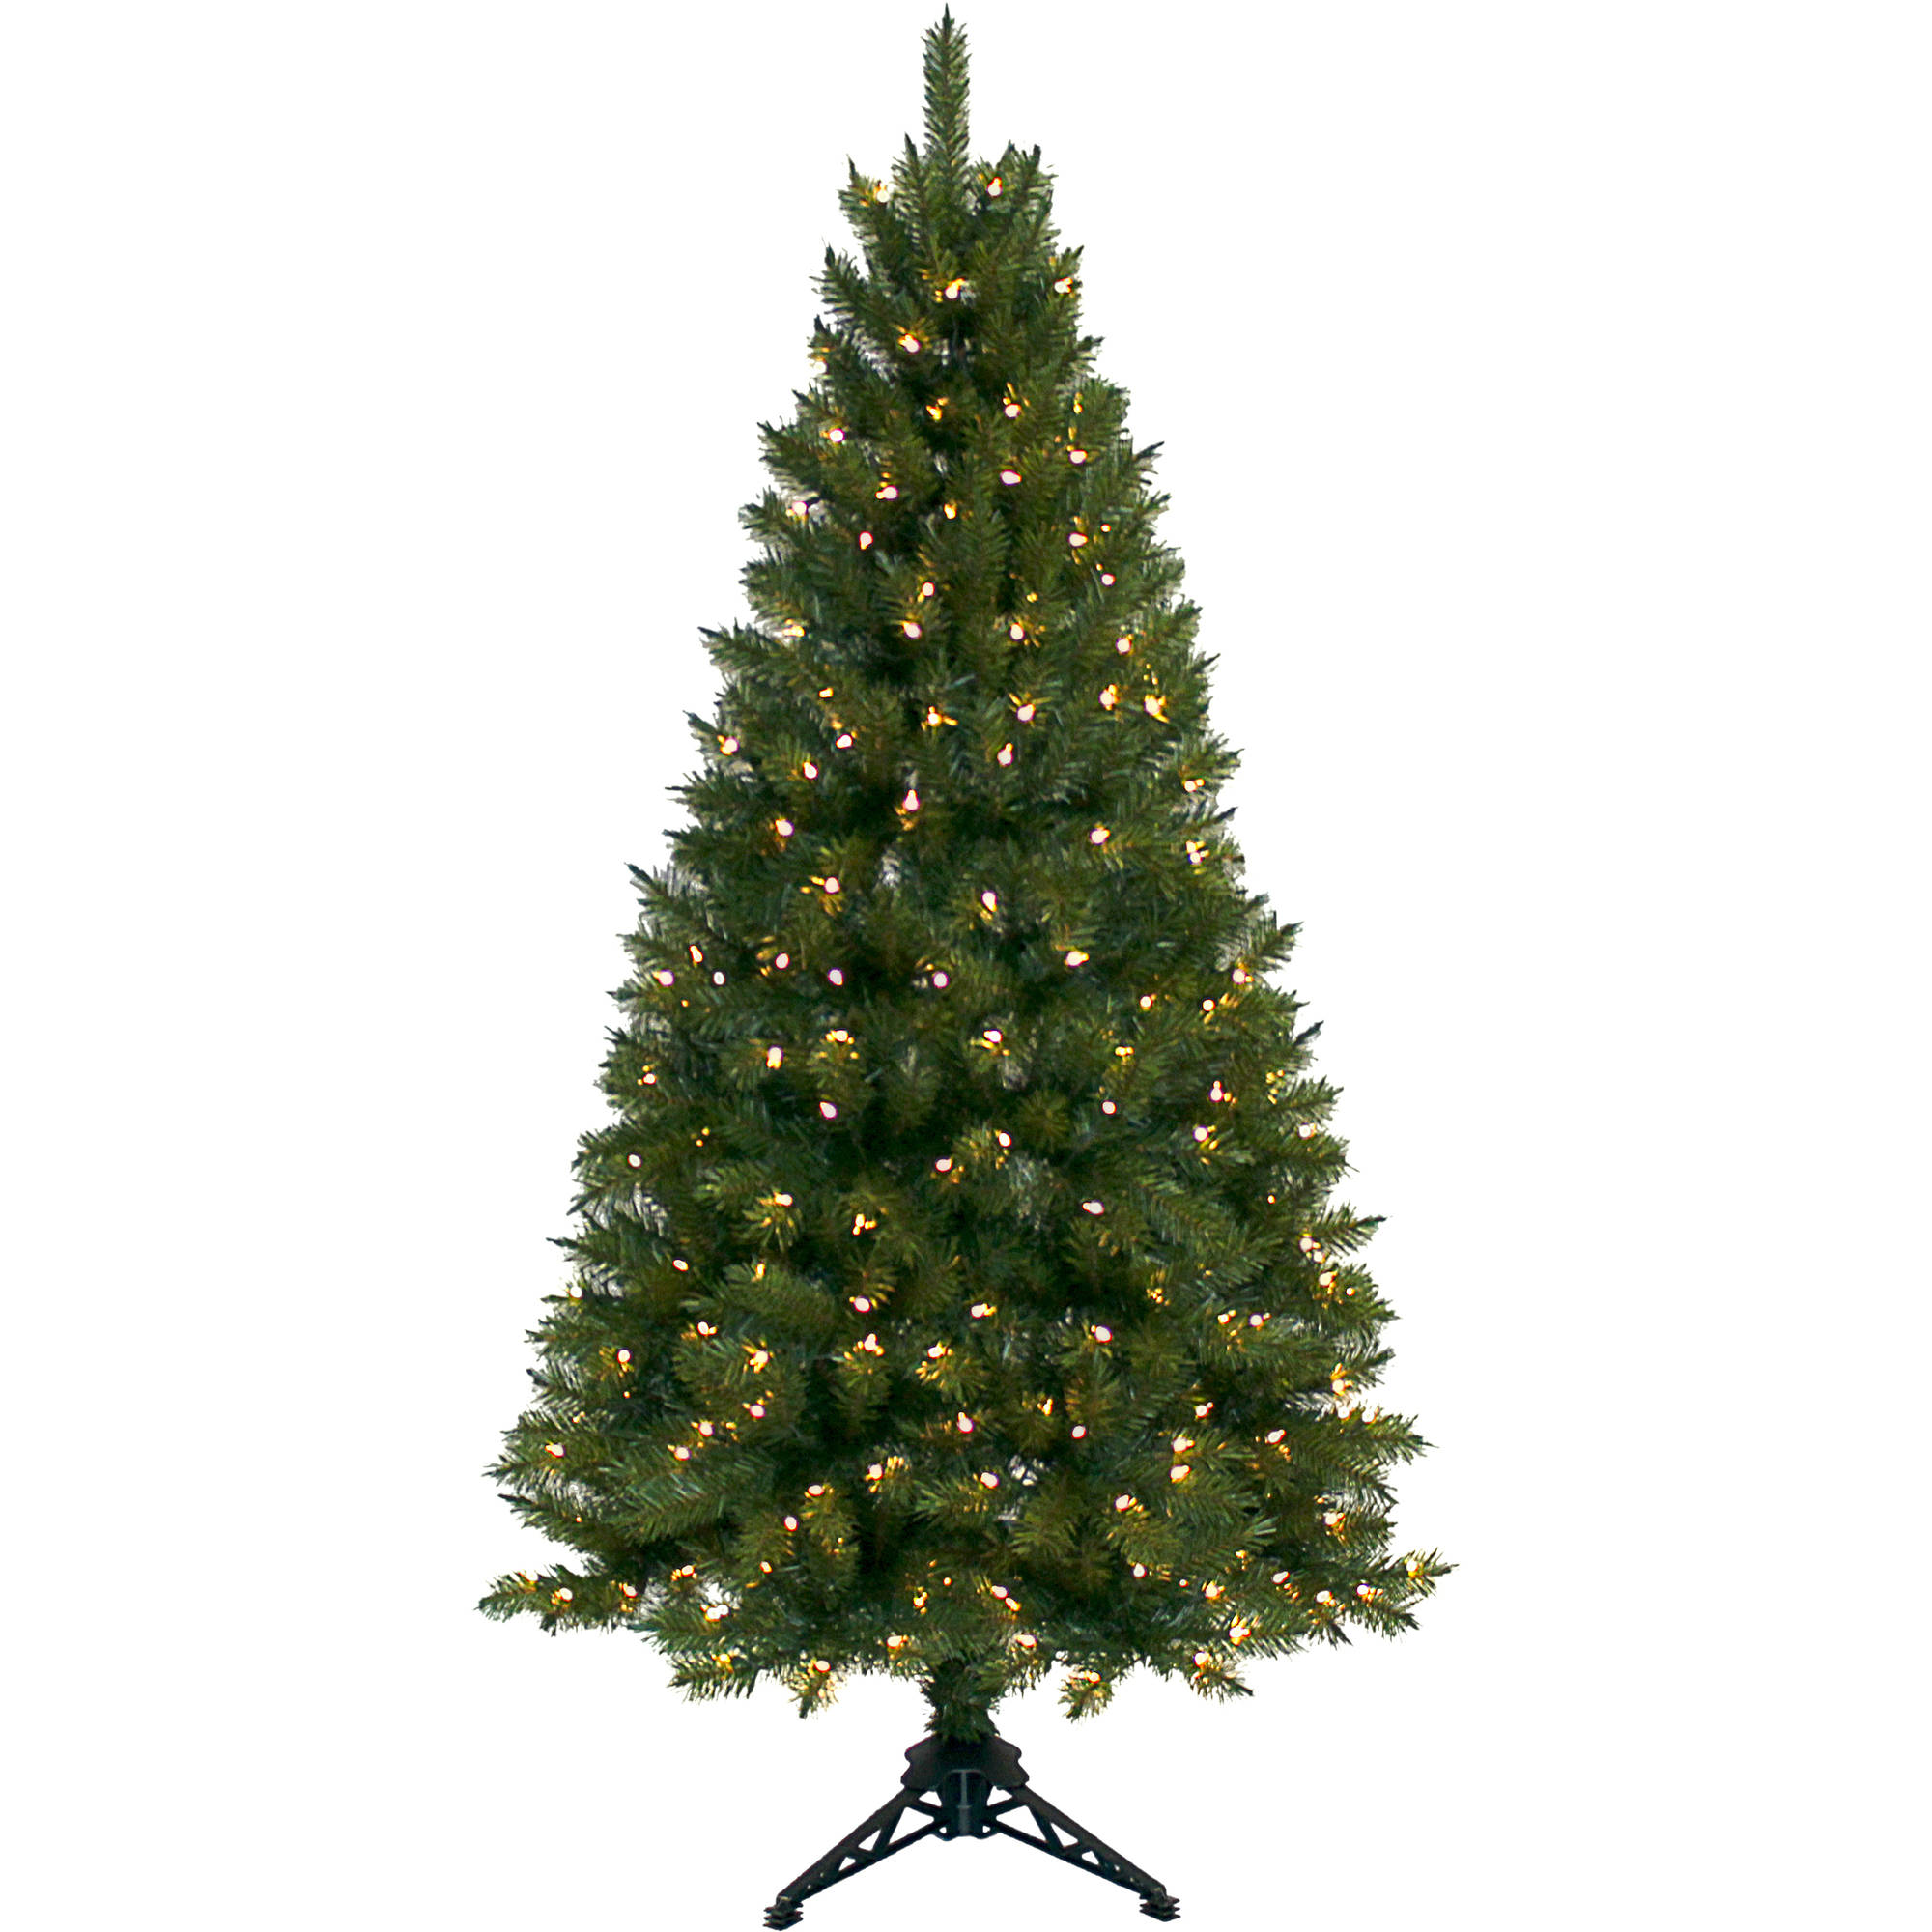 Pre-Lit 6' Half Christmas Tree, Green, Clear Lights - Walmart.com